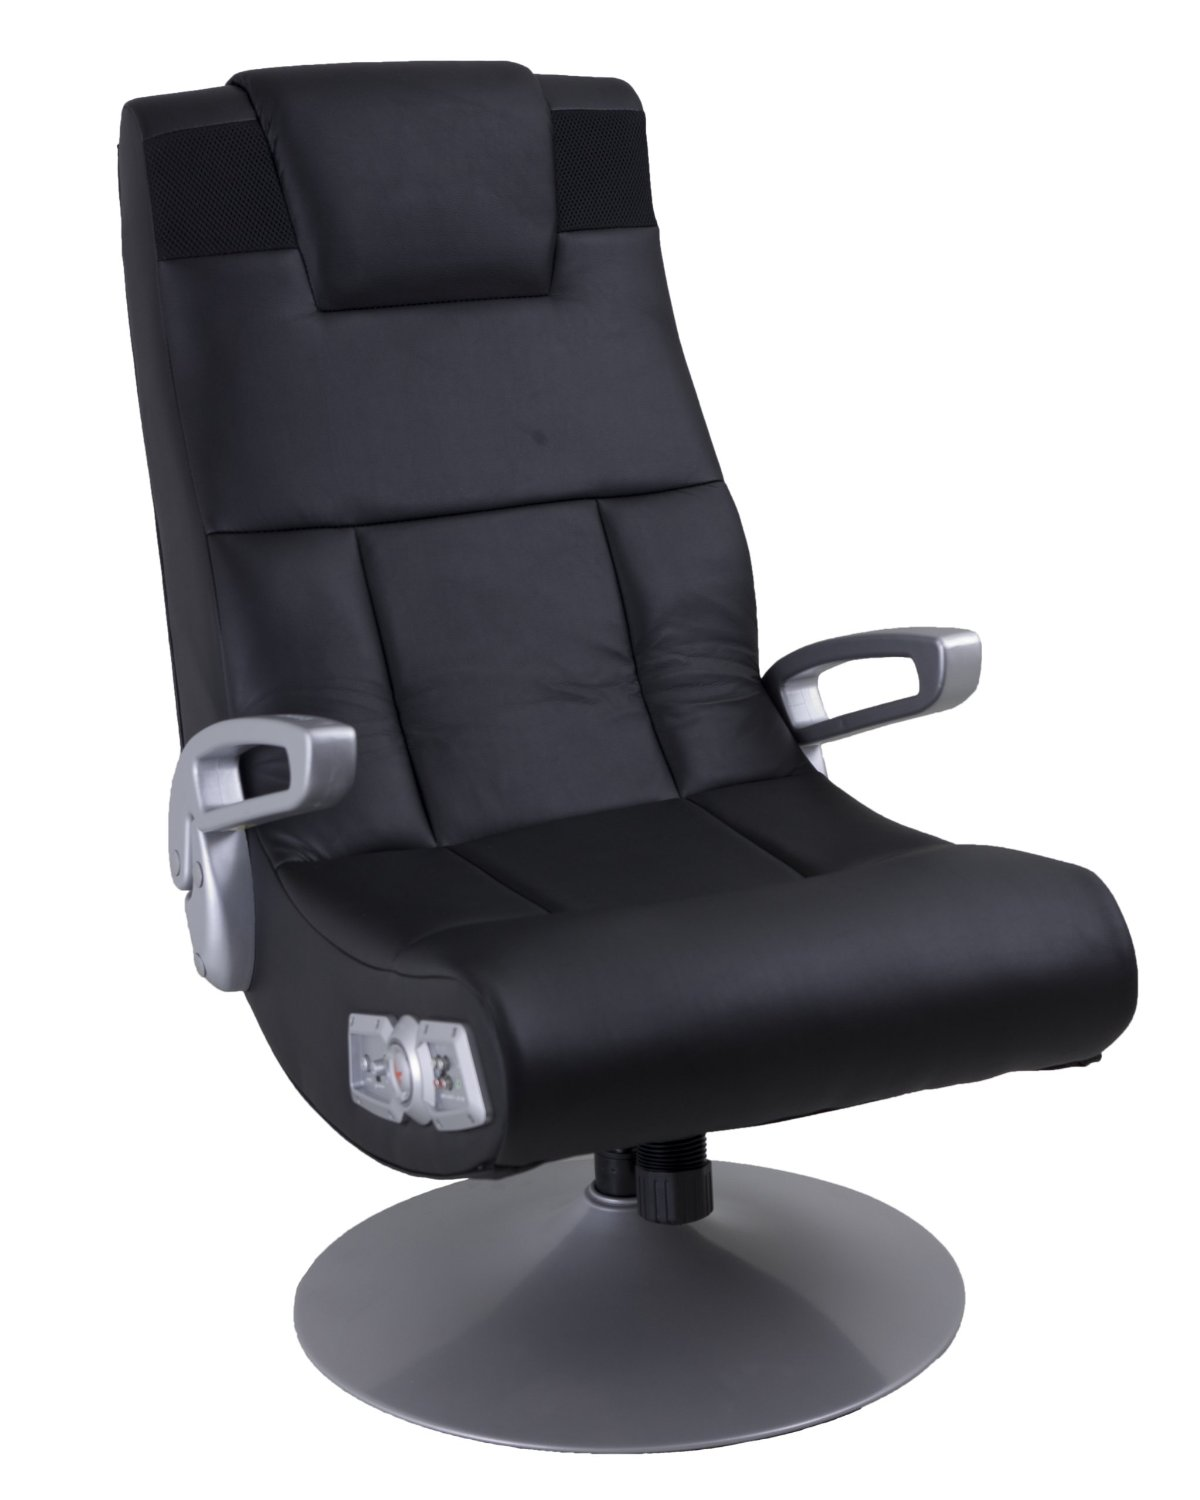 5 Video Gaming Chairs For Racing Accessories Lists